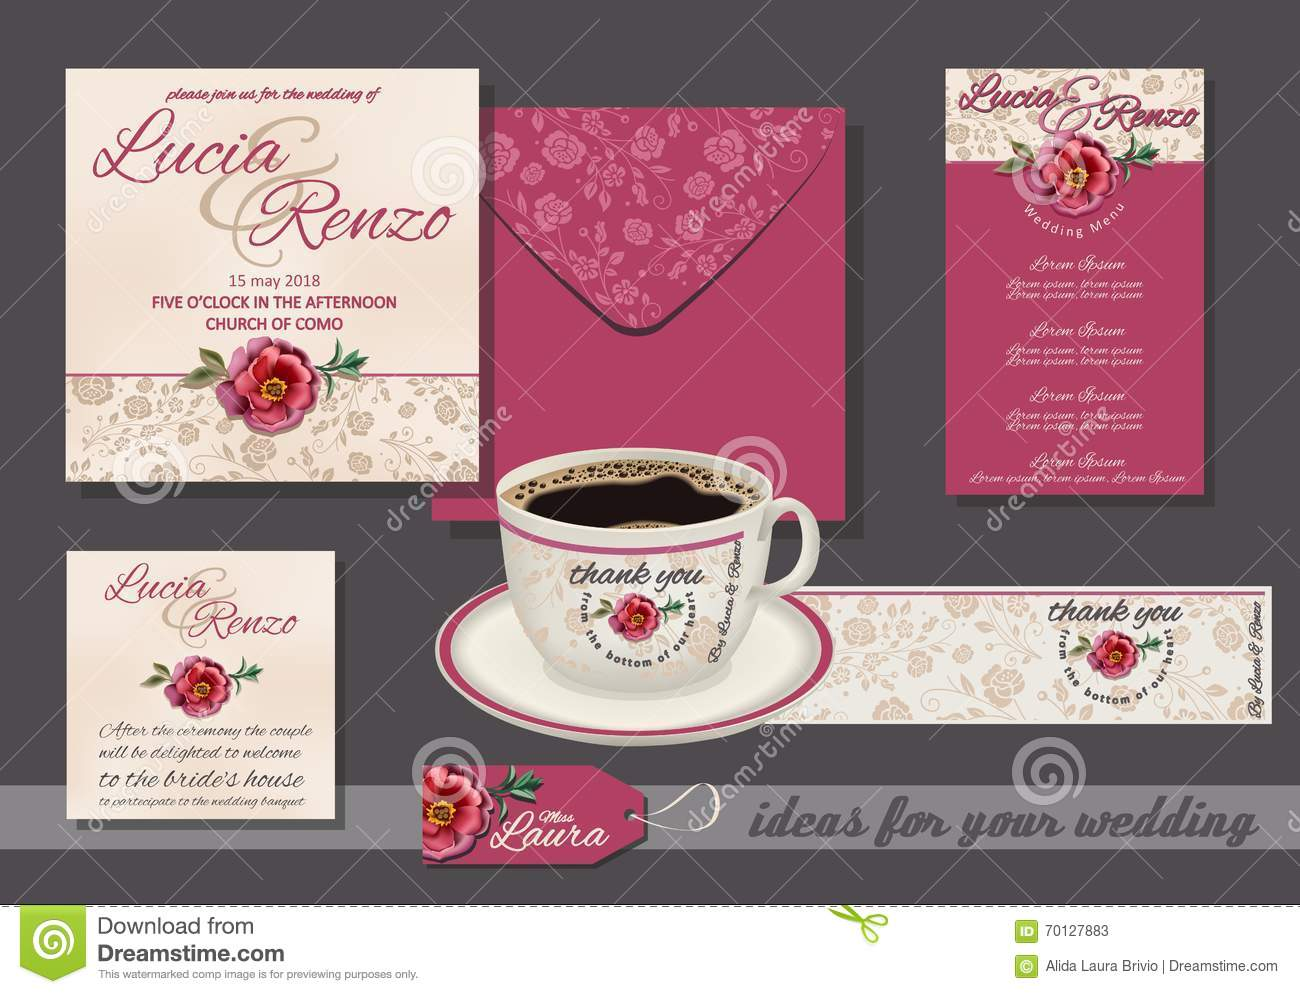 wedding invitation with red rose and small flowers with invitation